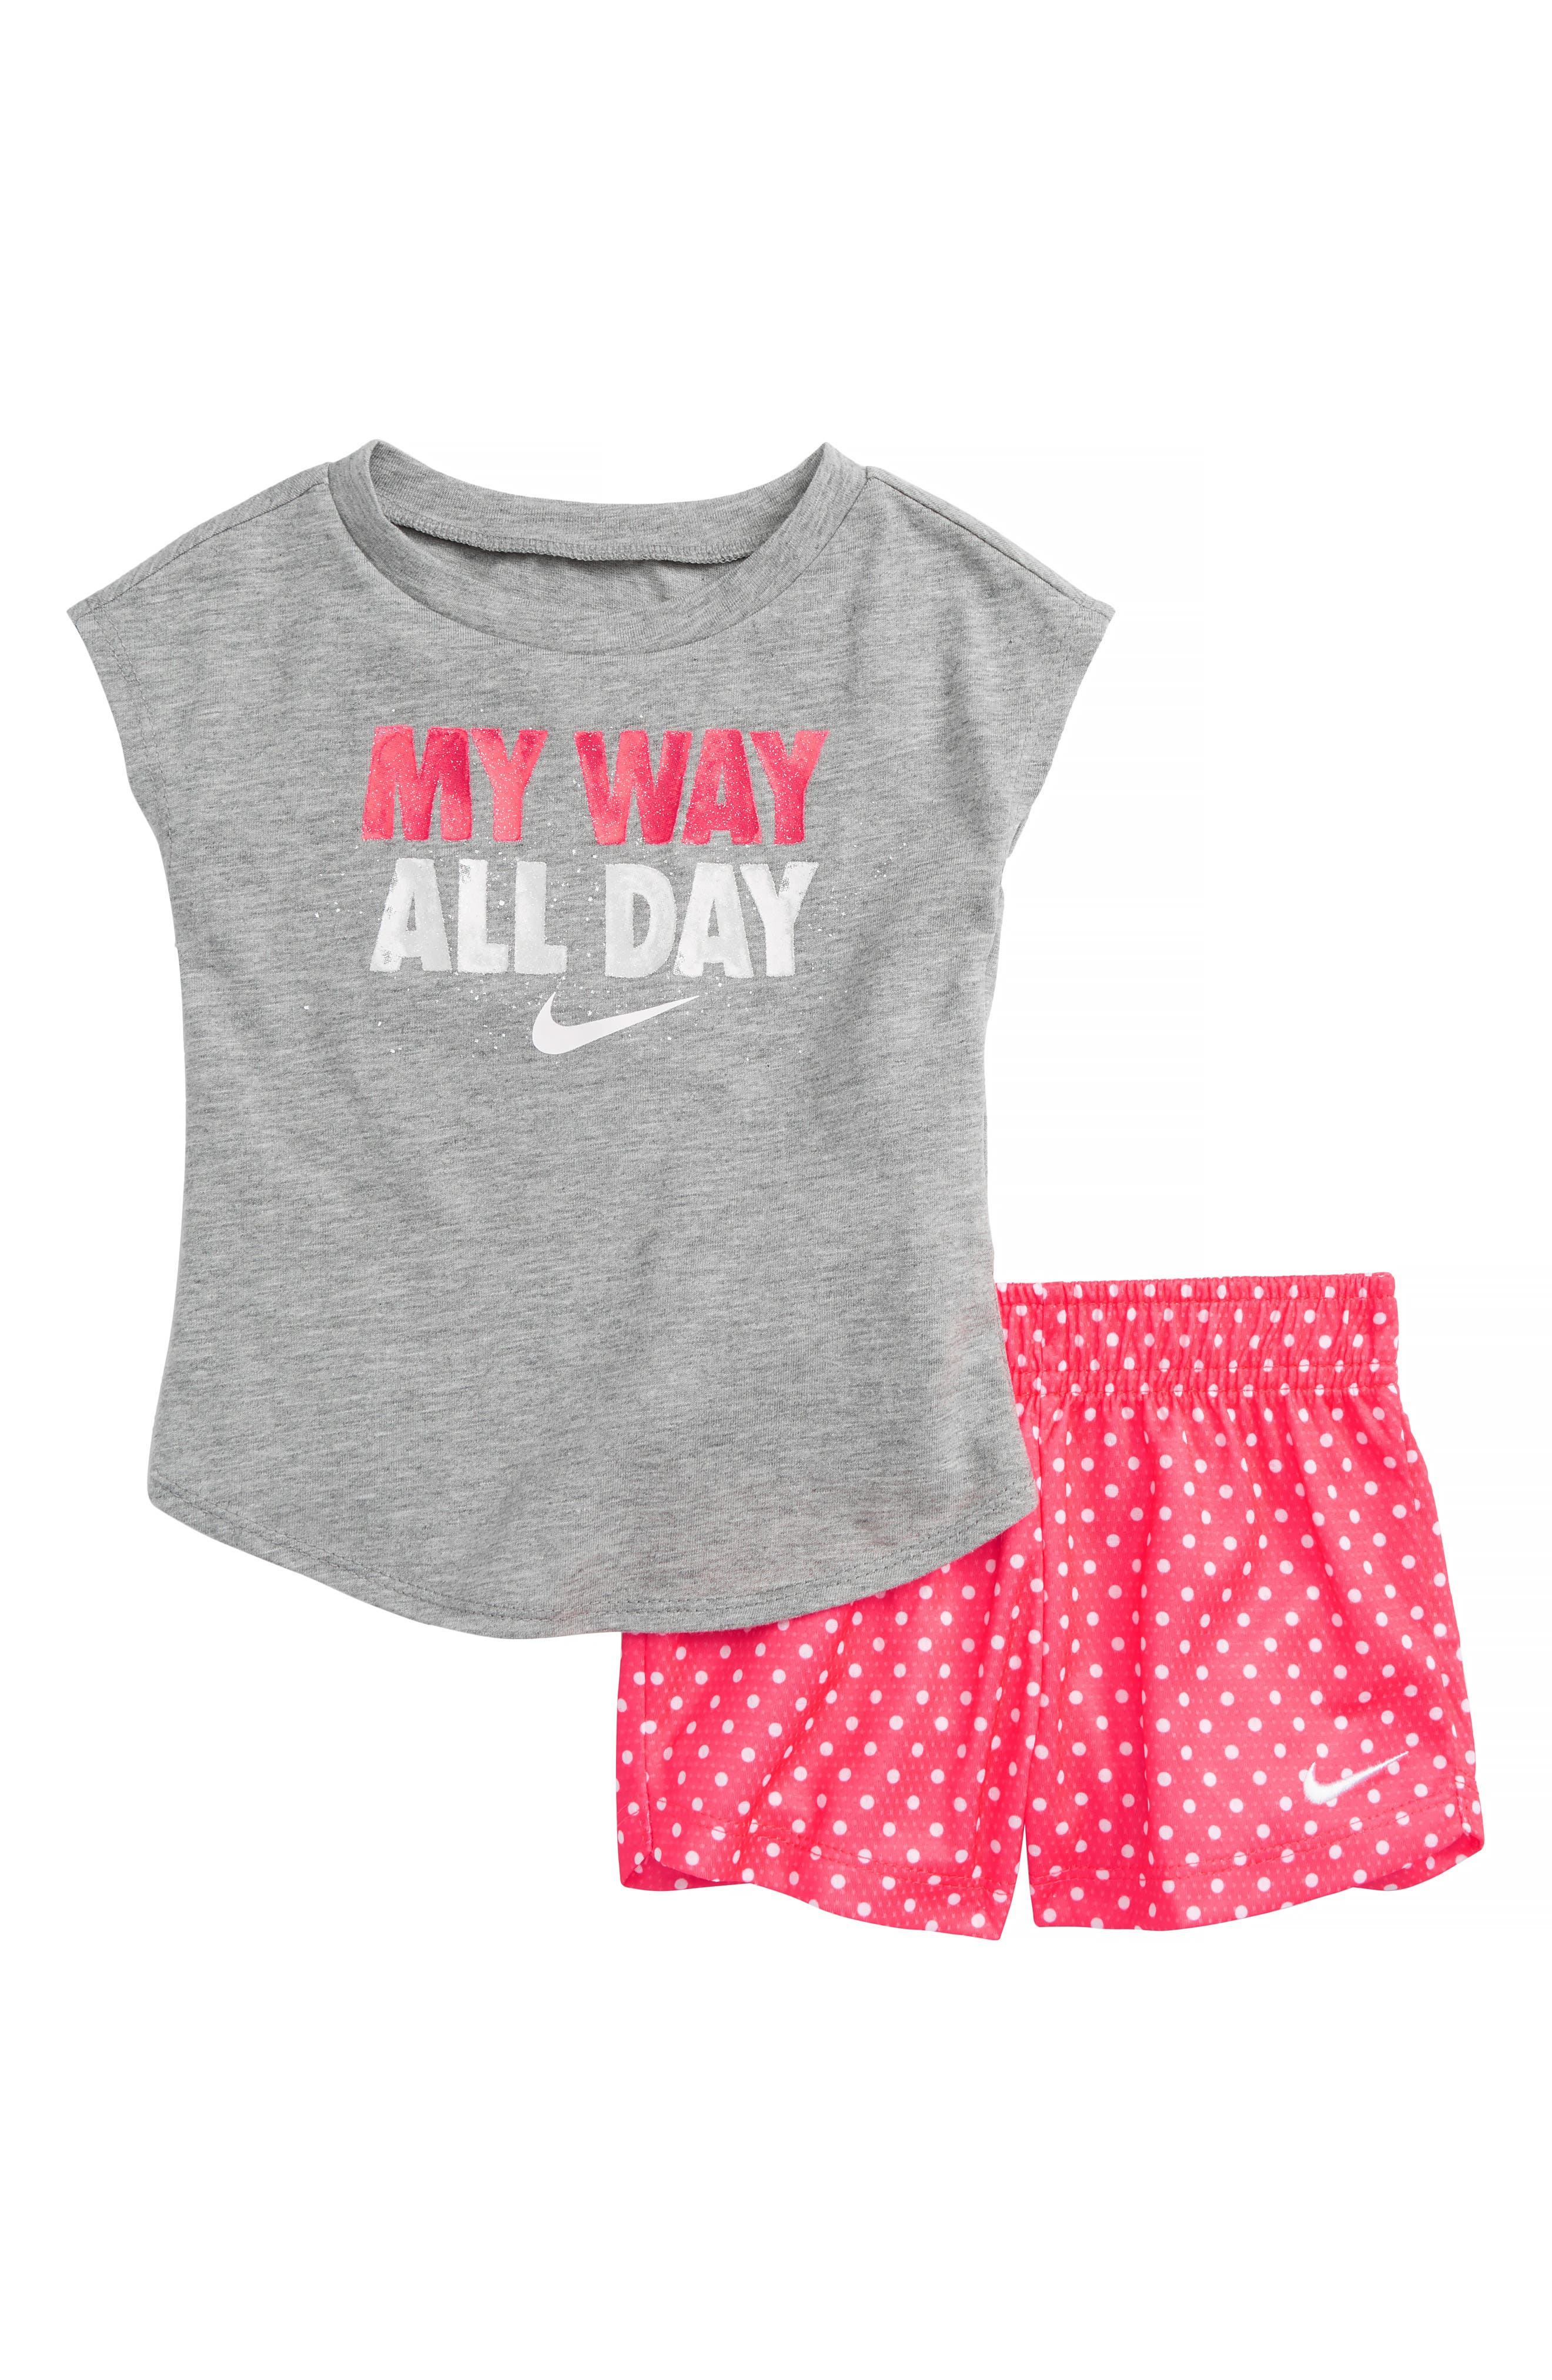 Main Image - Nike My Way All Day Graphic Tee & Shorts Set (Baby Girls)